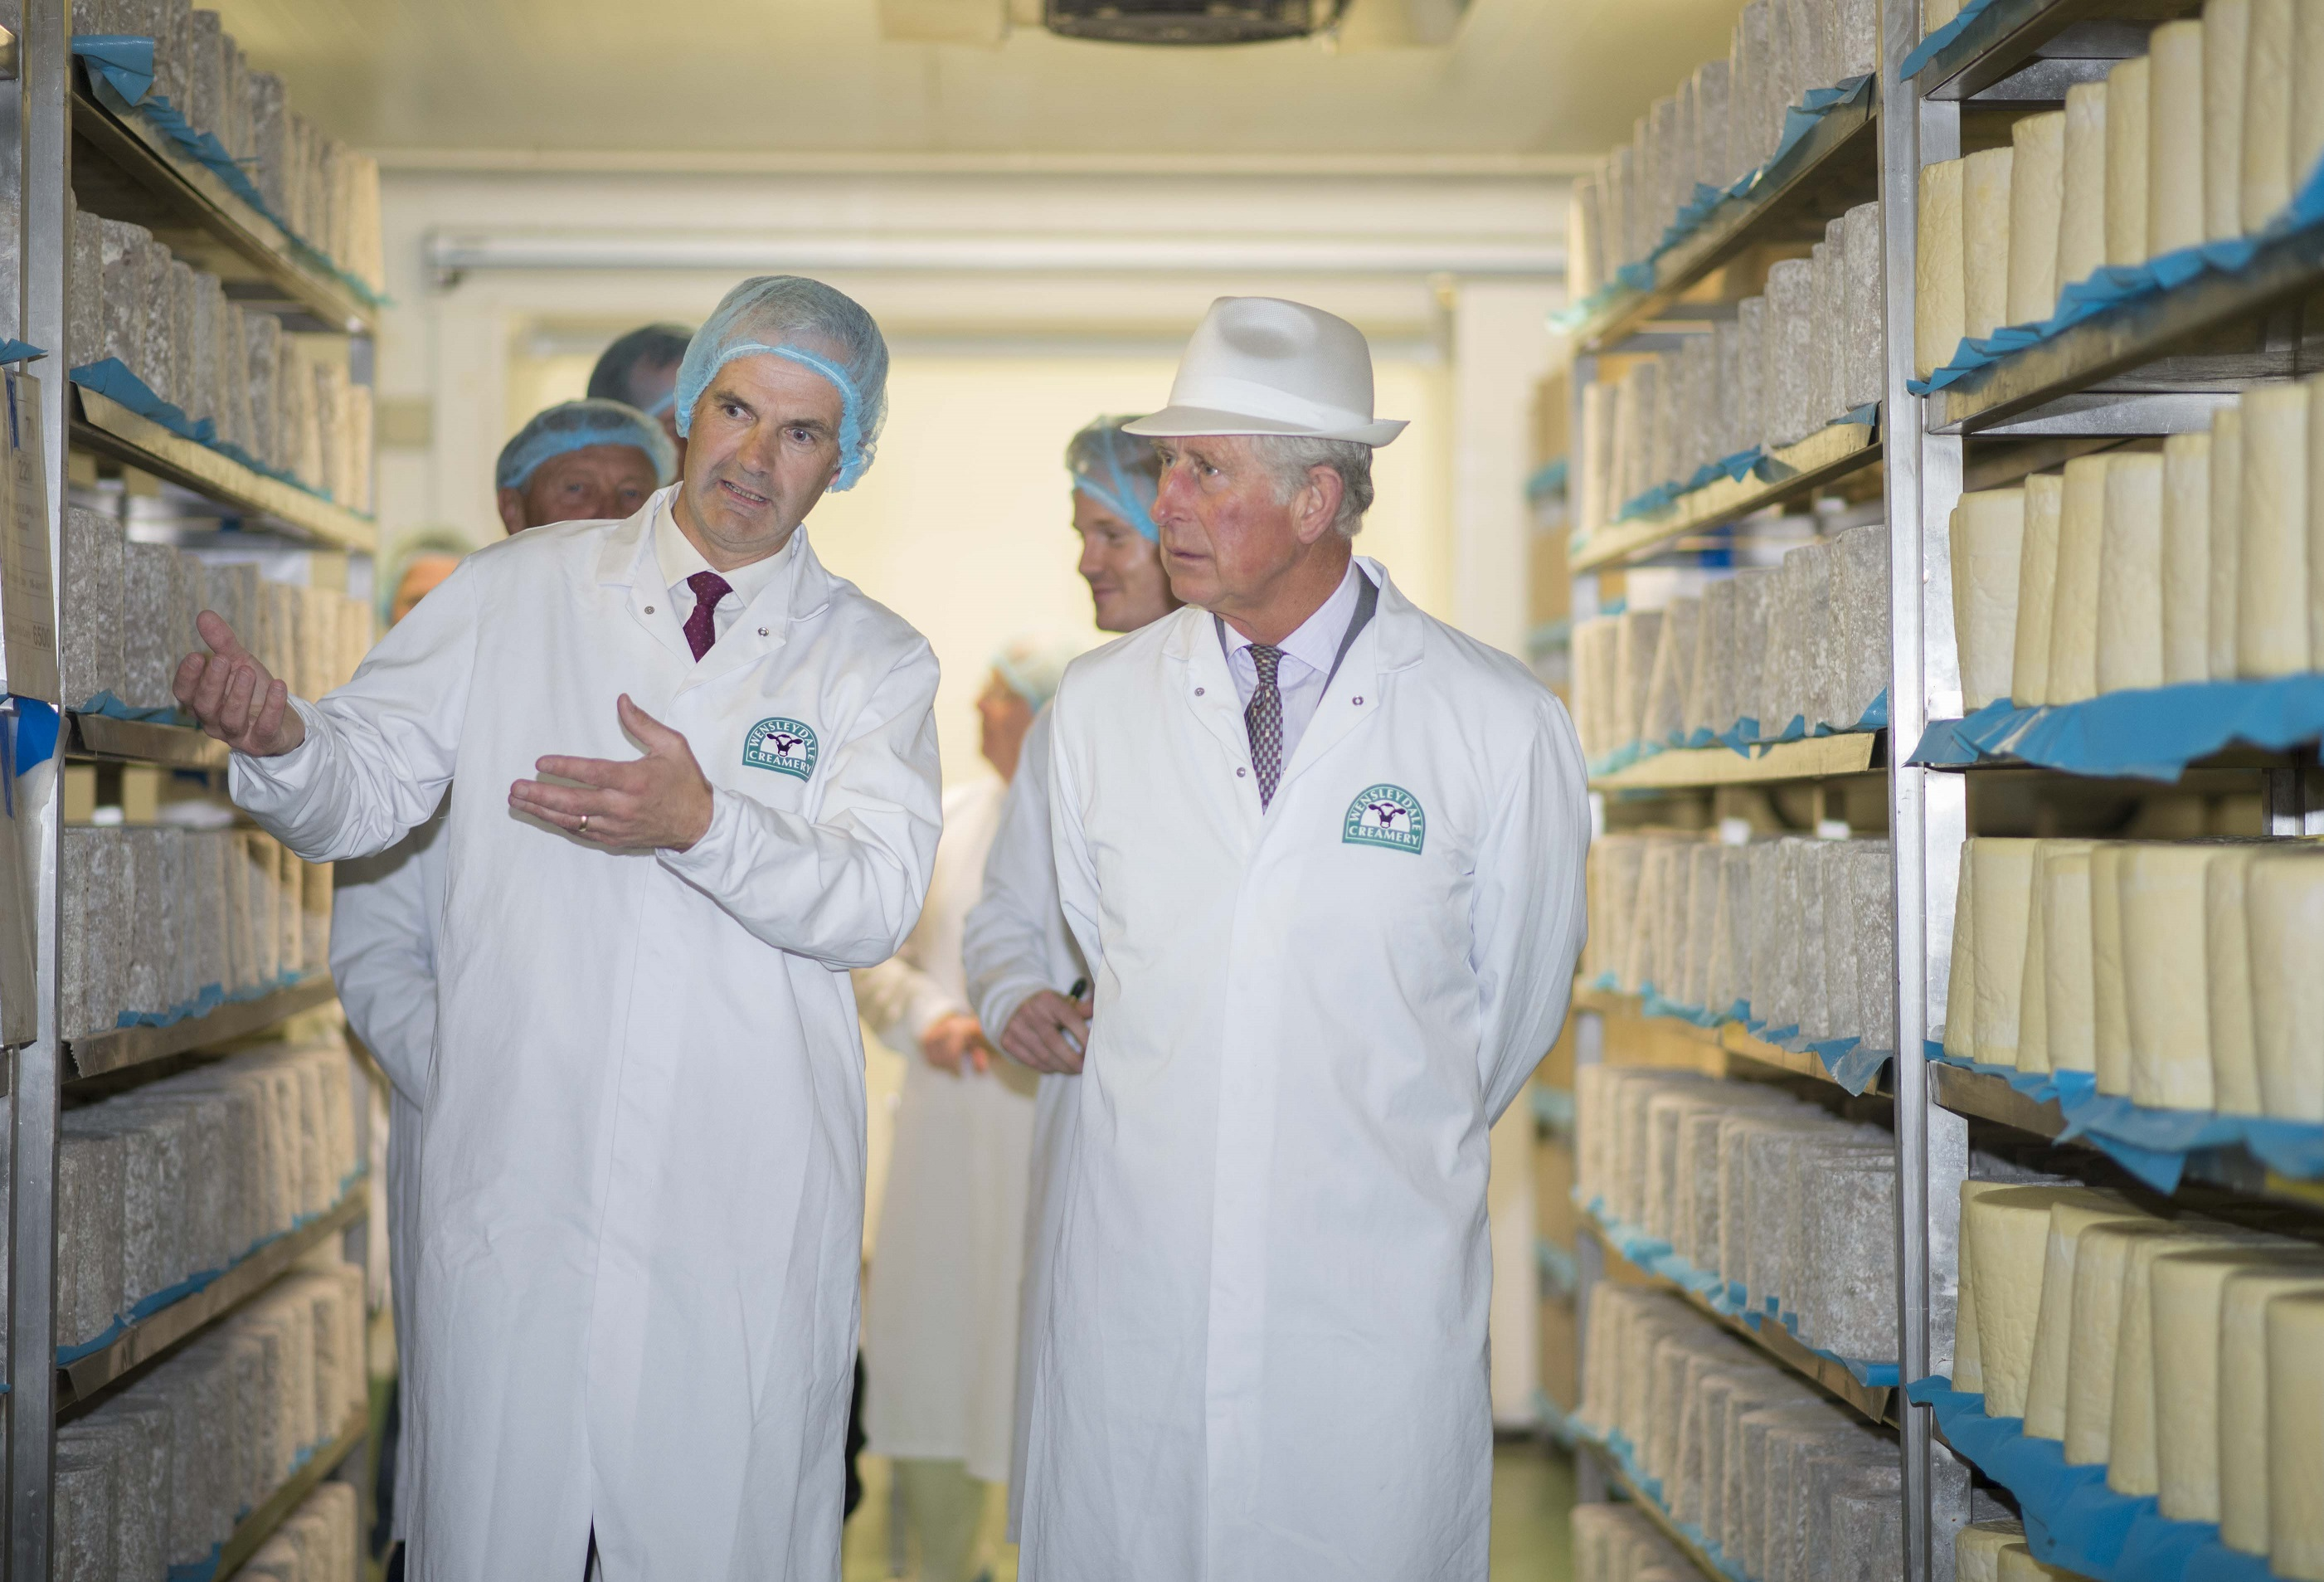 HRH The Prince of Wales Visits The Wensleydale Creamery Cheese Maturing Room